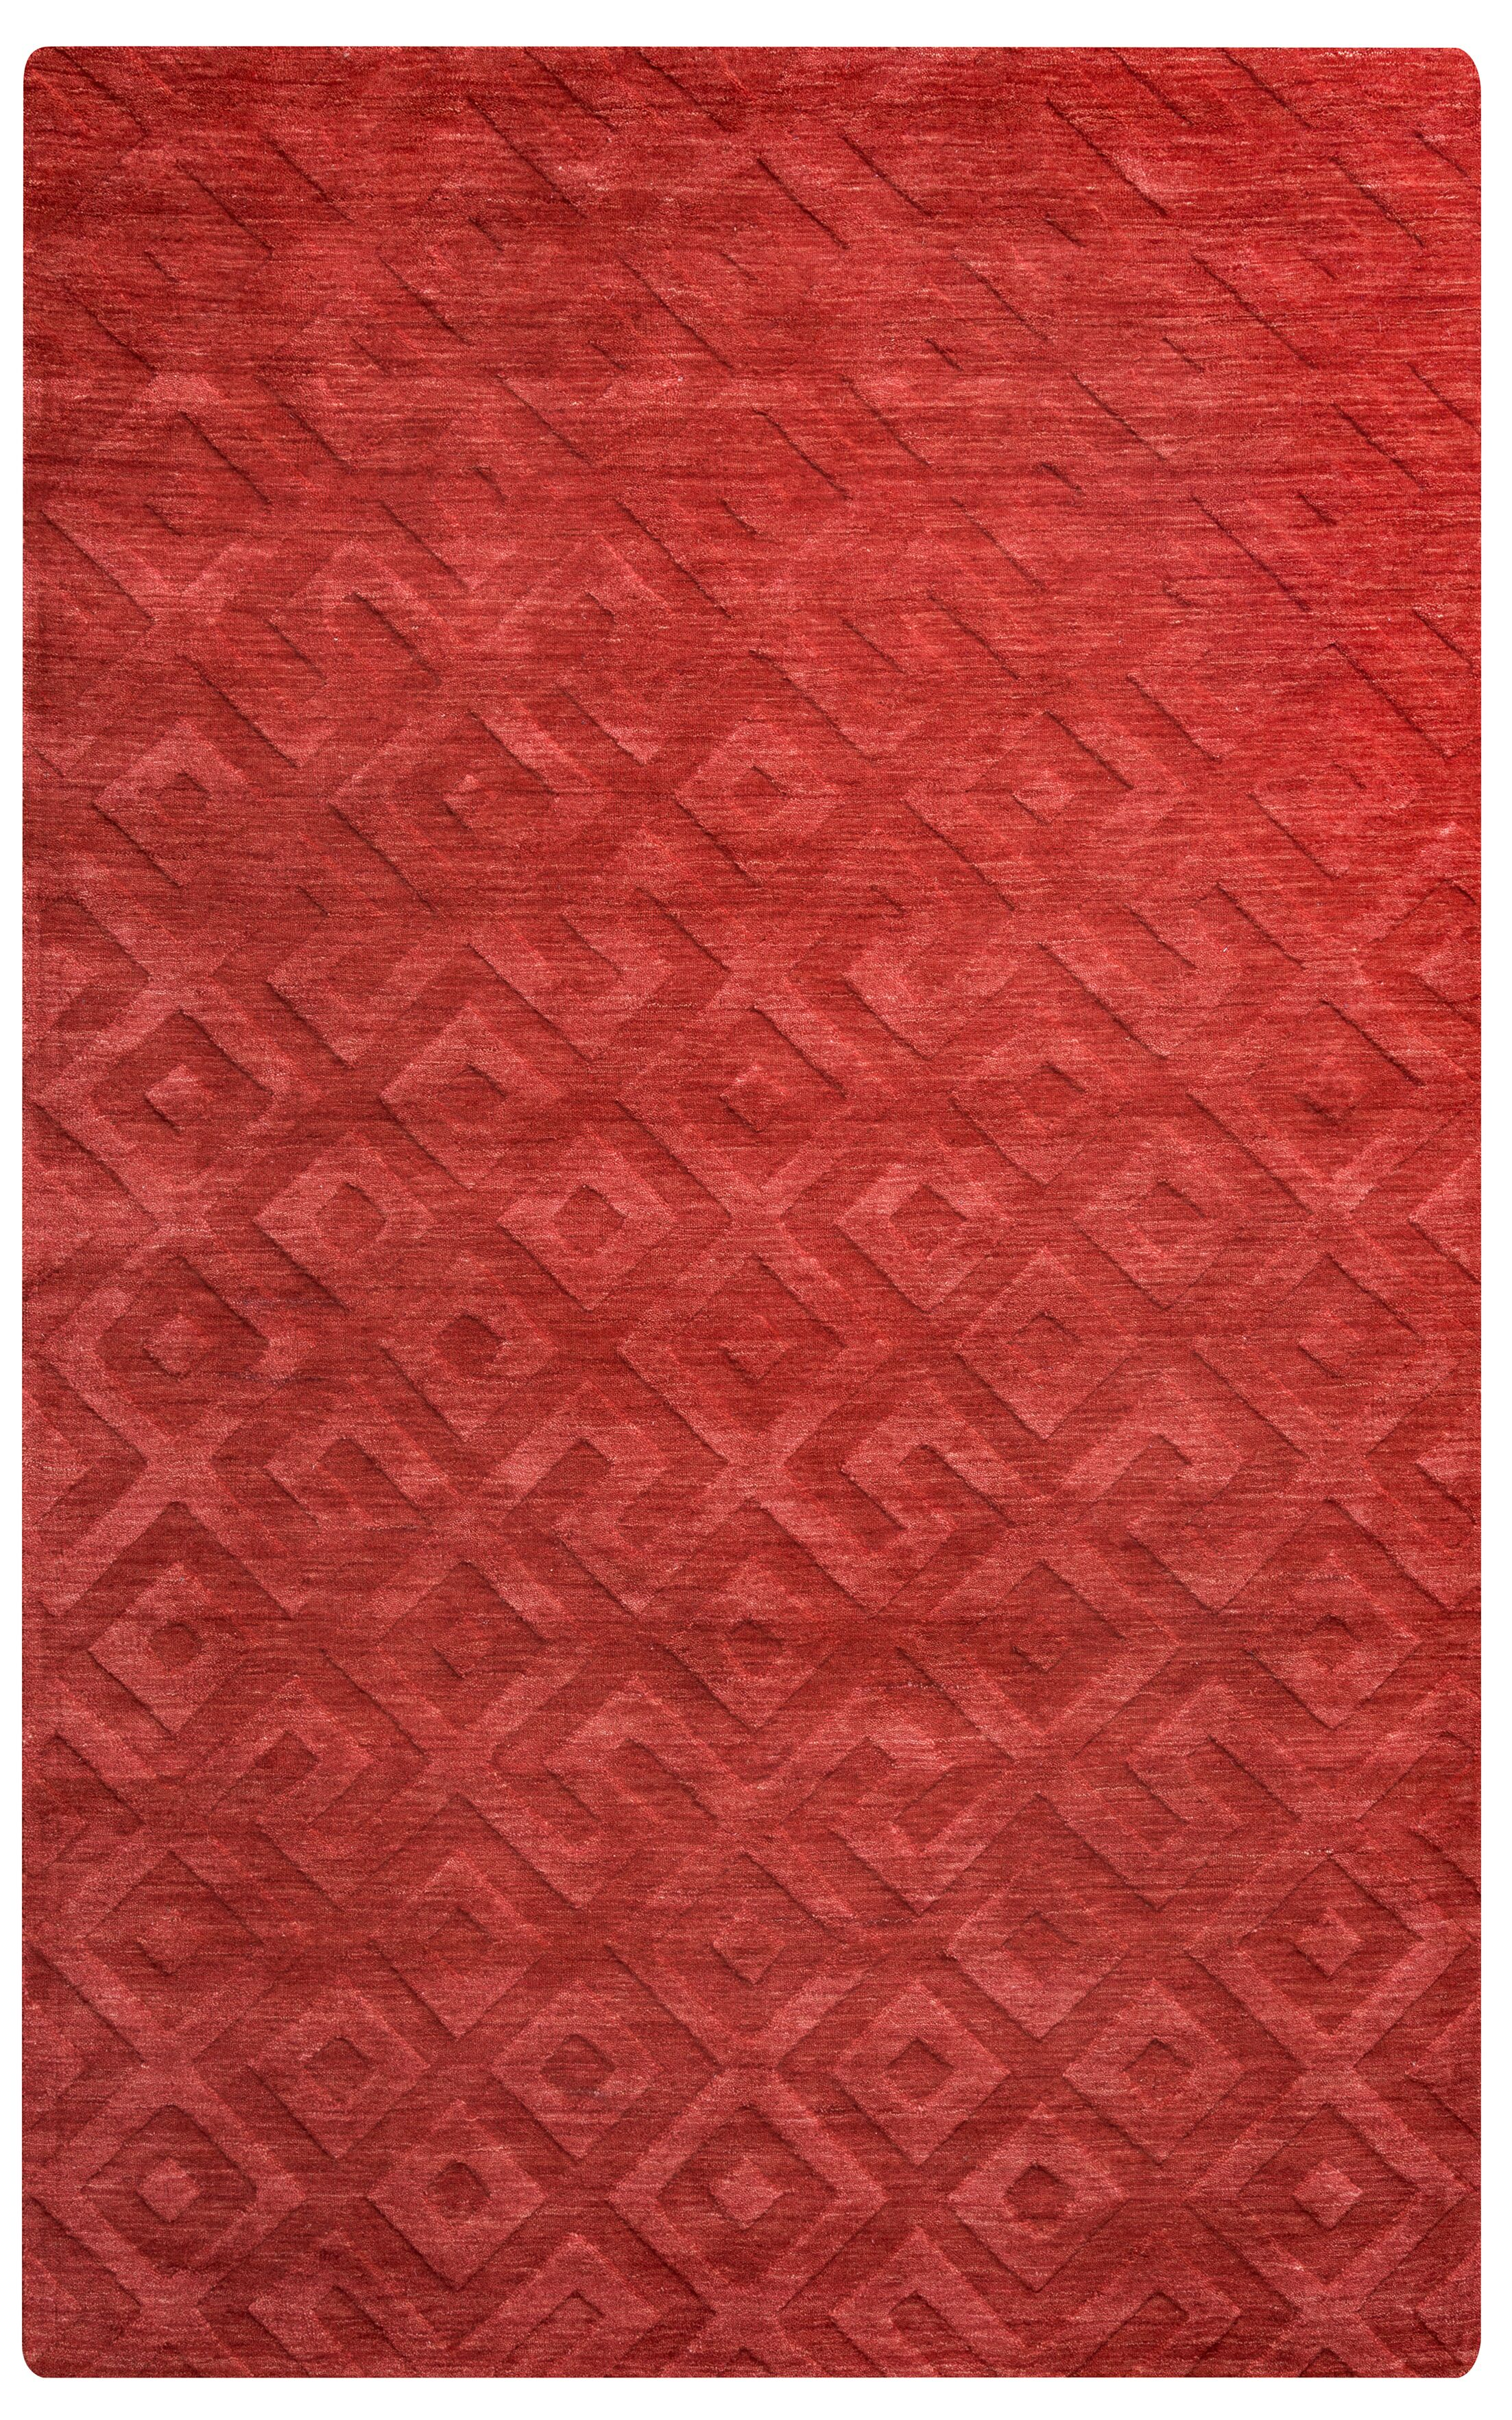 Heraklion Hand-Loomed Red Area Rug Rug Size: Rectangle 3' x 5'